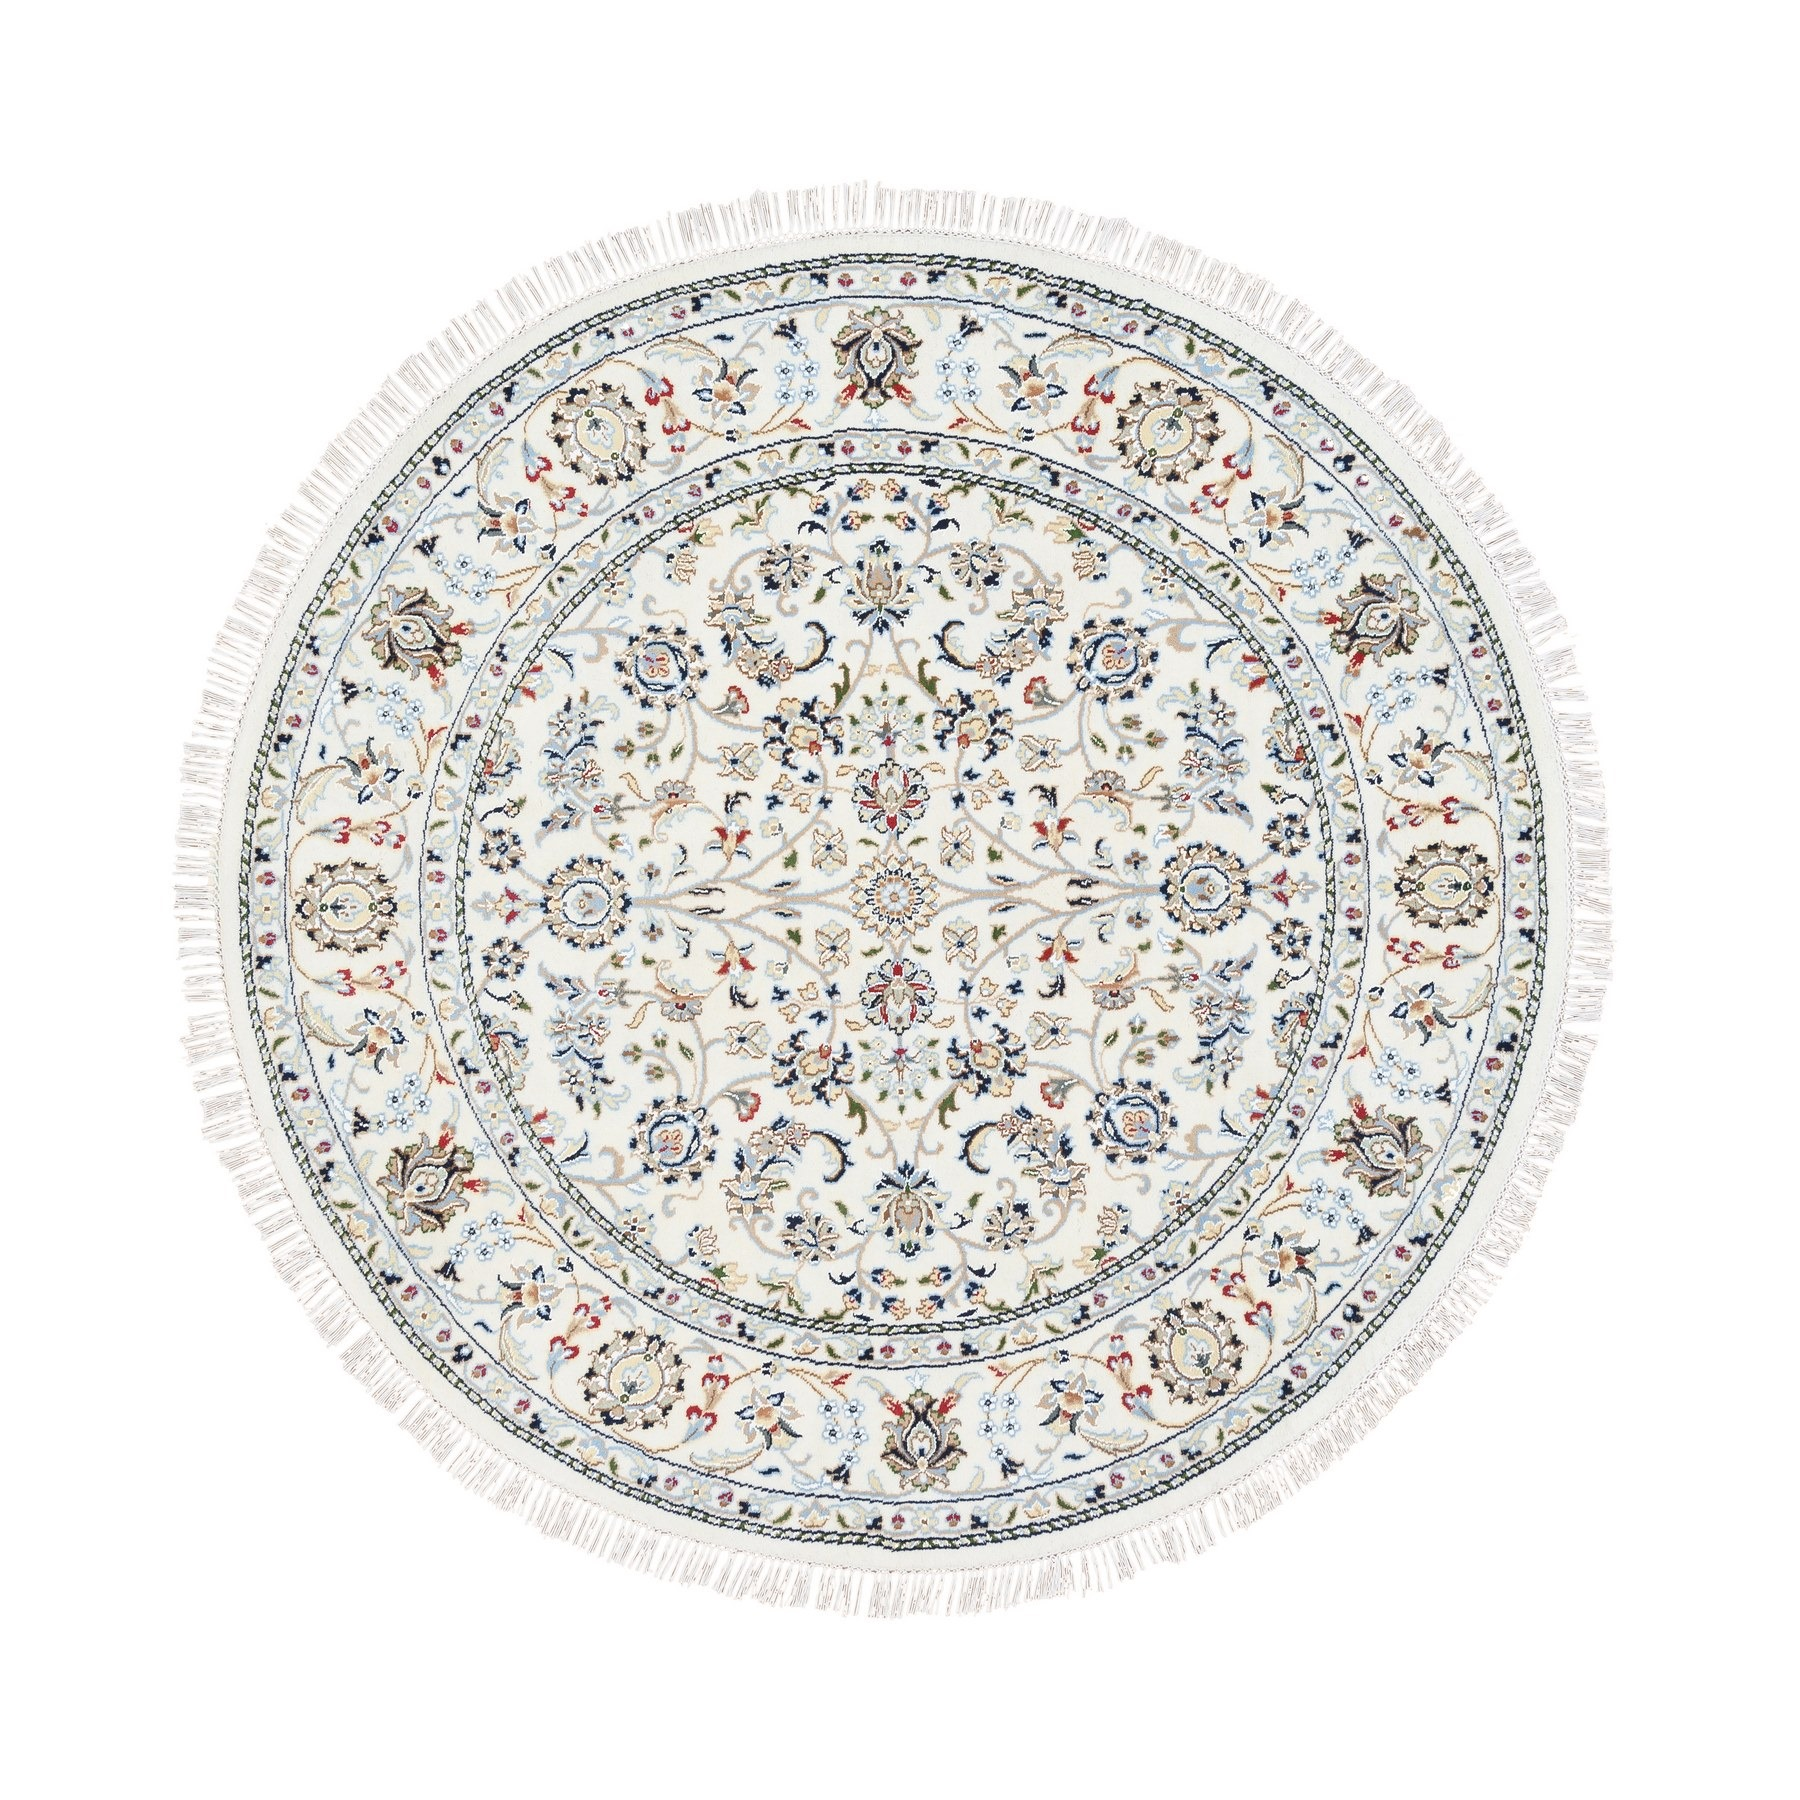 Pirniakan Collection Hand Knotted Ivory Rug No: 1125574